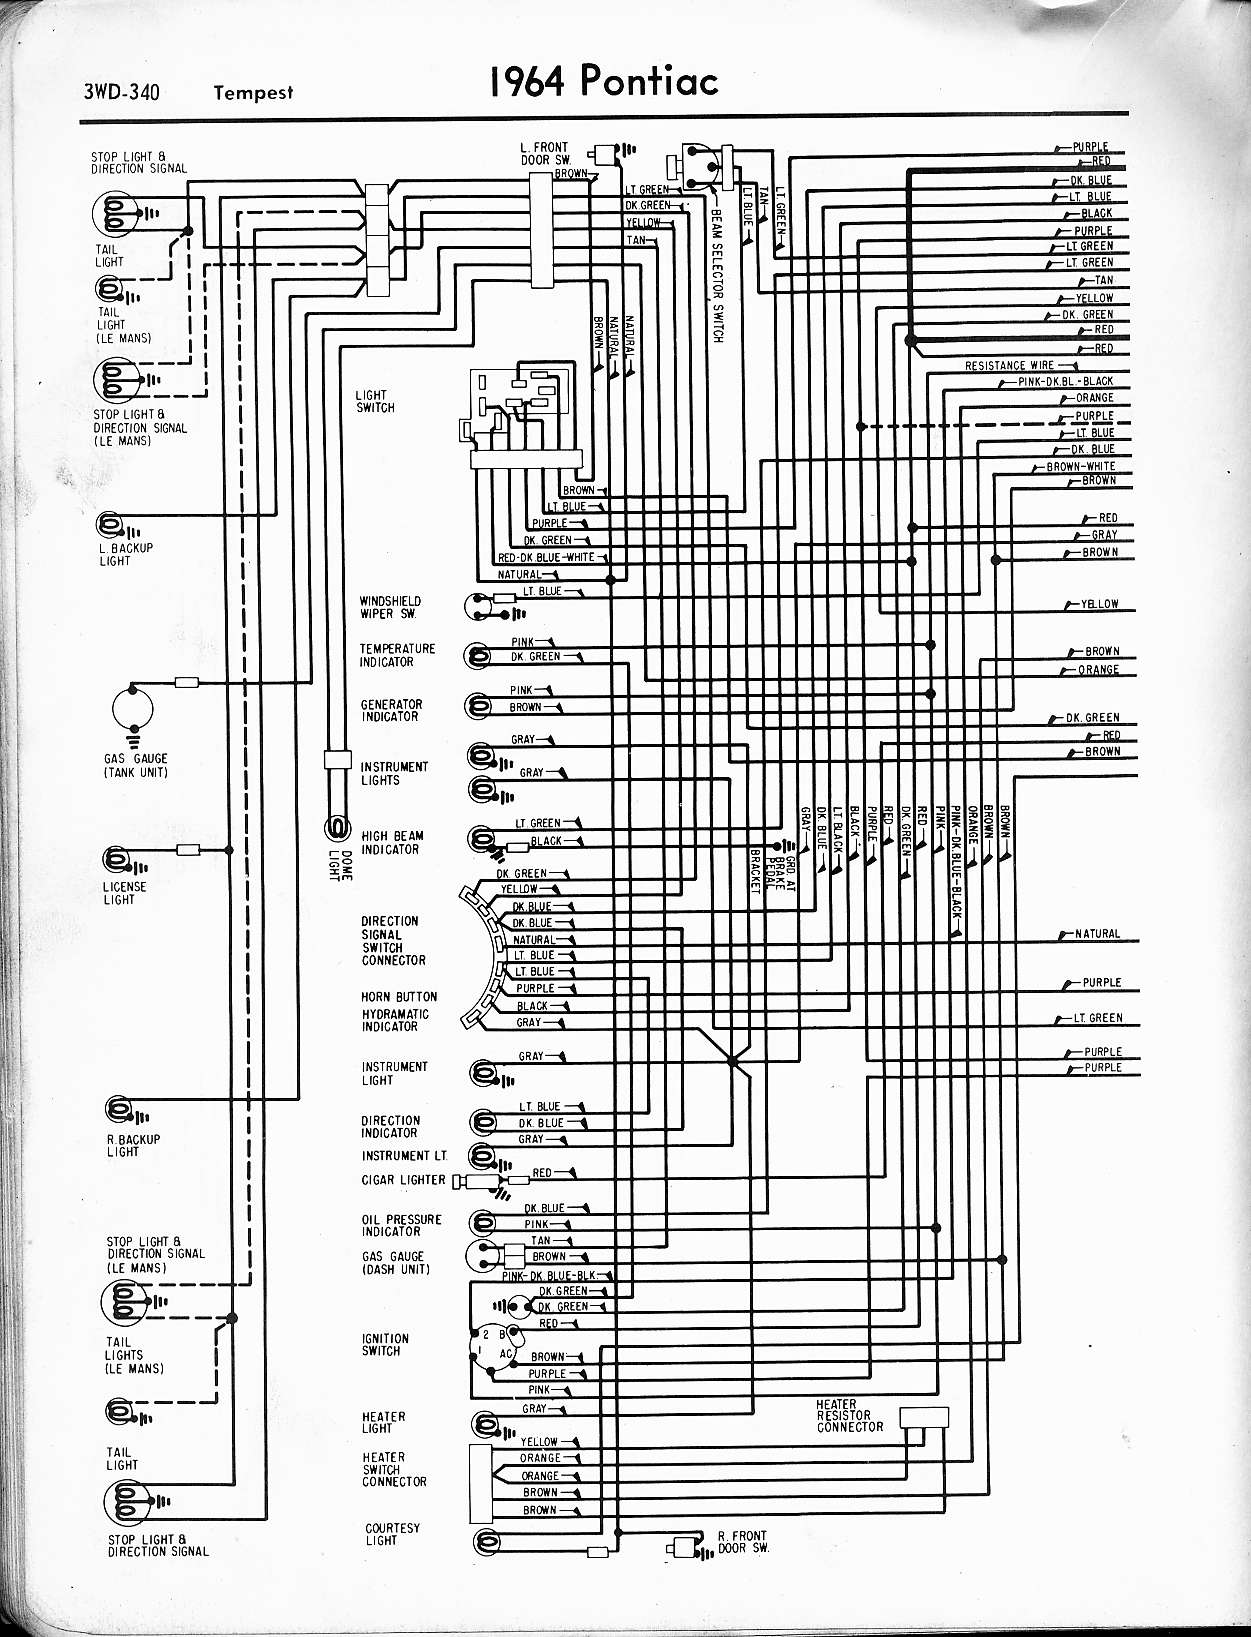 2006 Gto Engine Diagram Wiring Library Ls2 1970 Pontiac Fuse Box Layout Diagrams U2022 Rh Laurafinlay Co Uk 1973